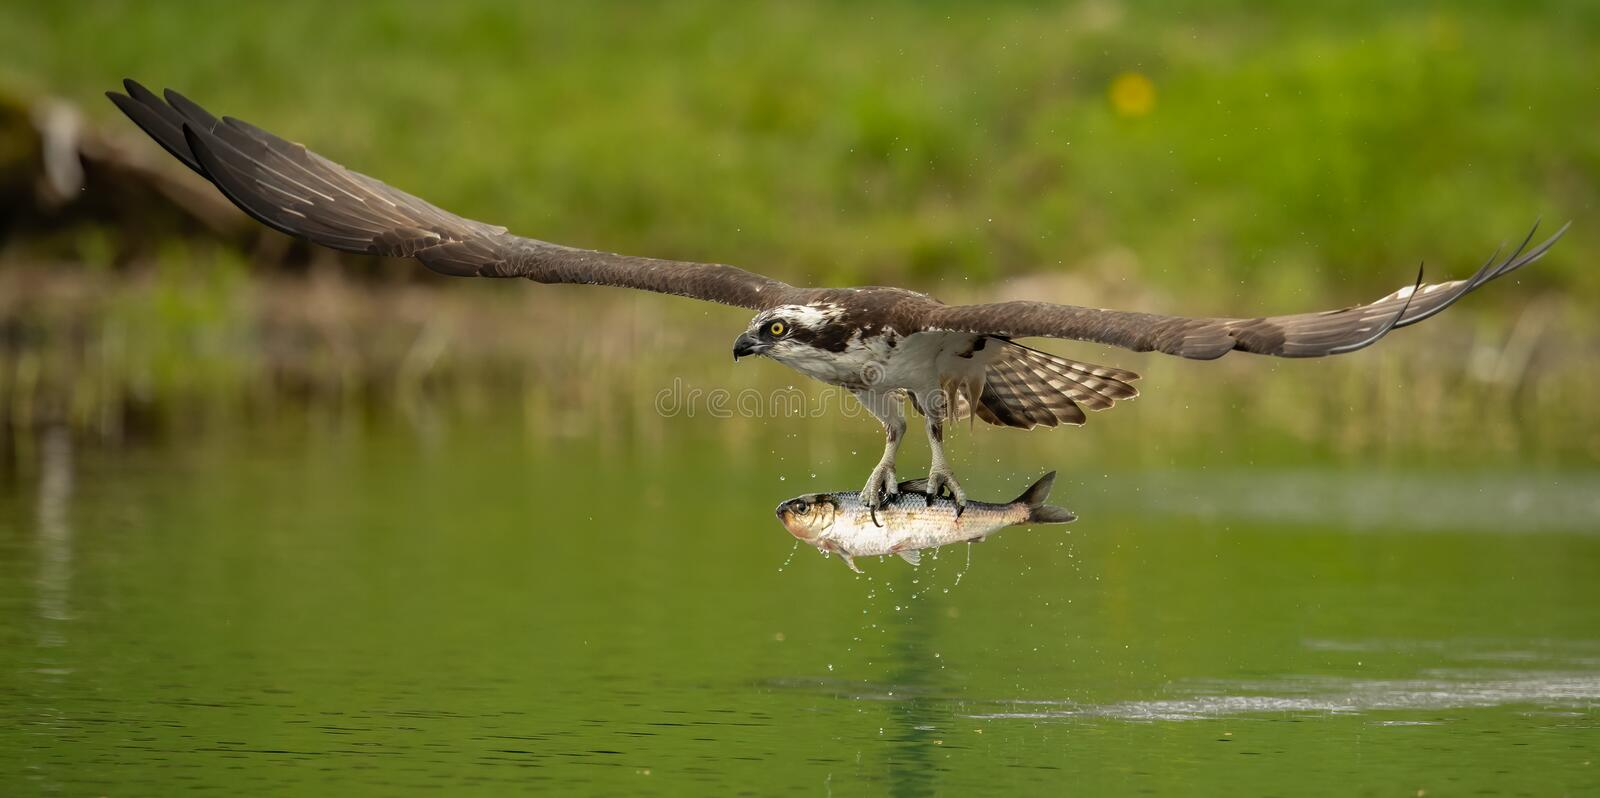 Up Close Shot of Osprey Catching a Fish royalty free stock images